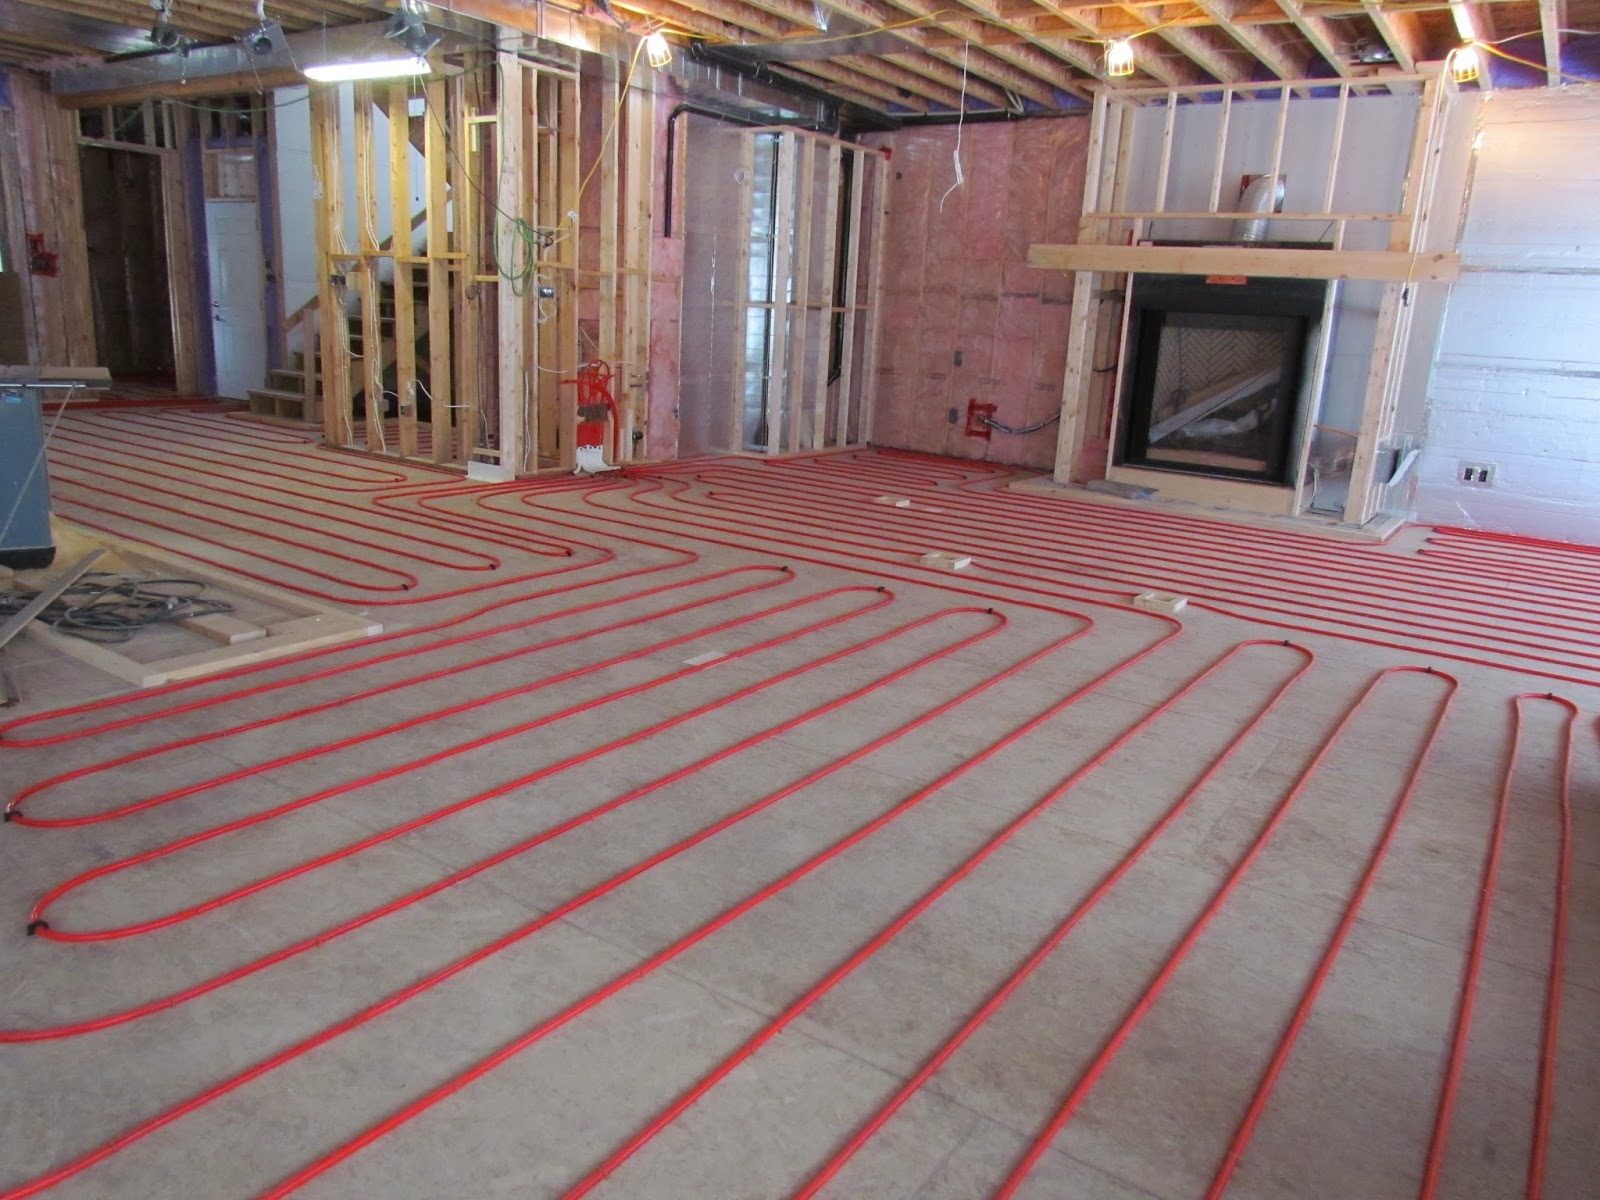 Best Flooring For Radiant Heat Basement